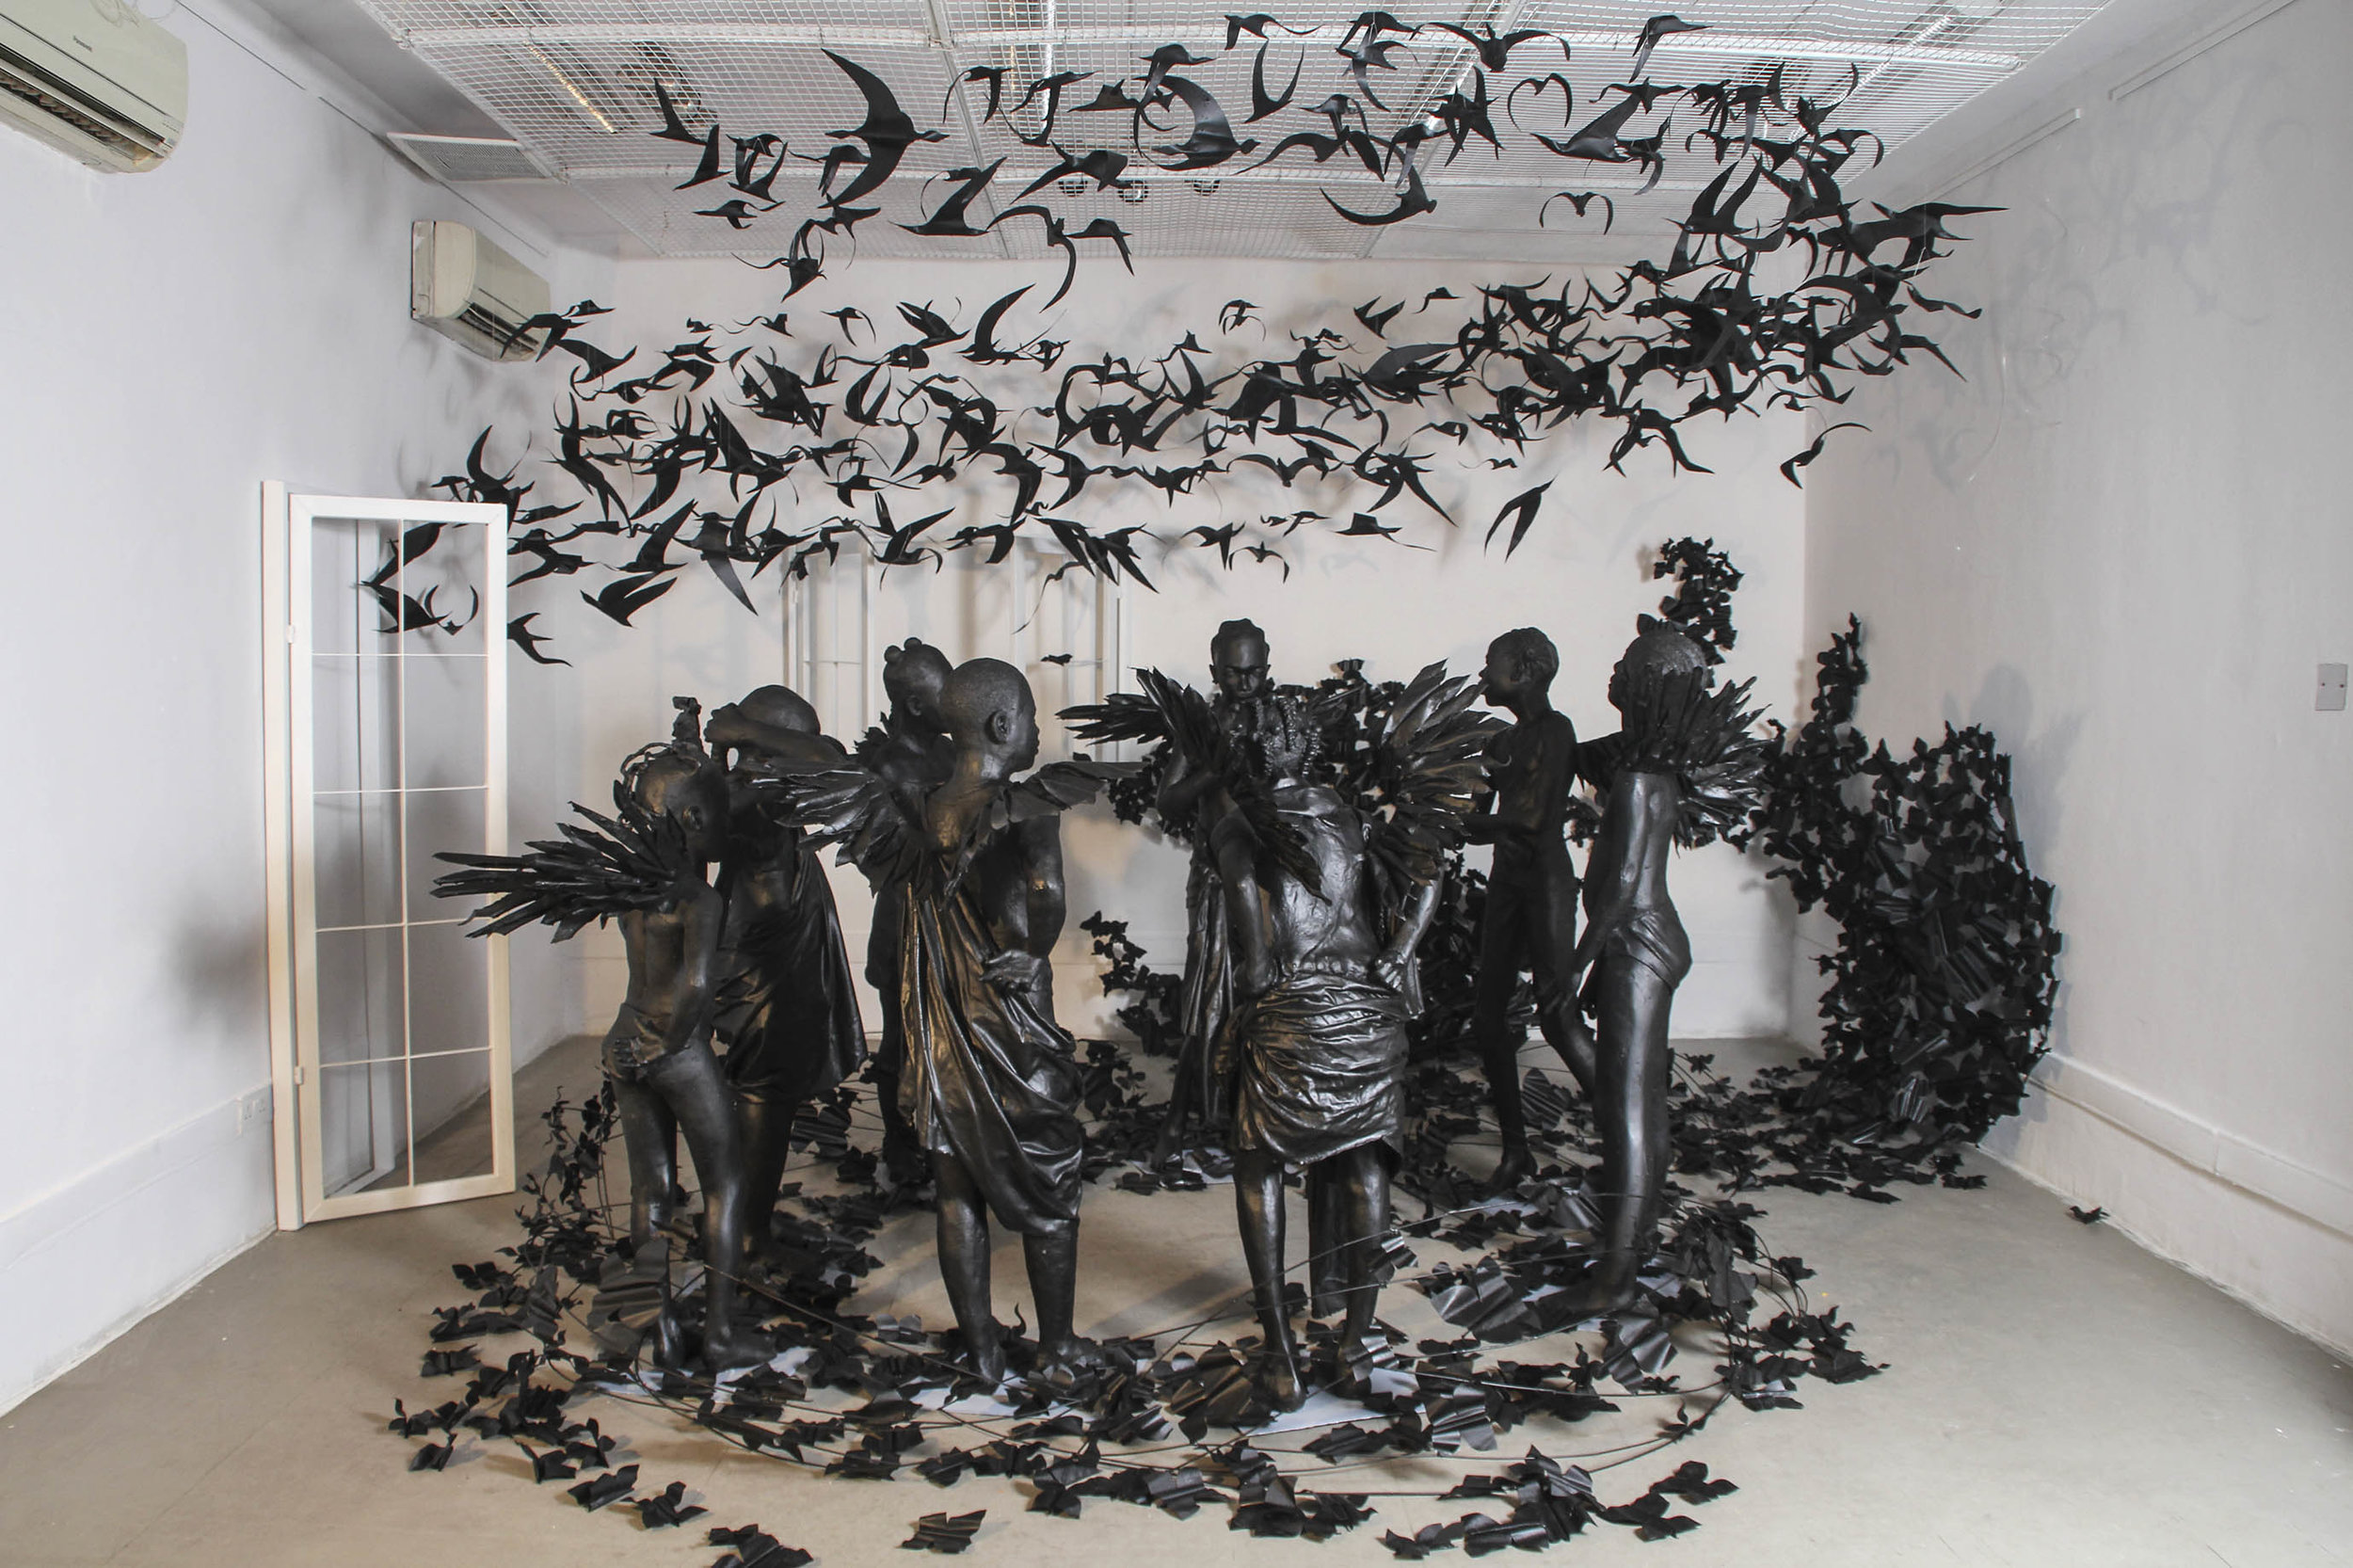 Flying Girls, 2017 installation at the Venice Biennale by Peju Alatise.